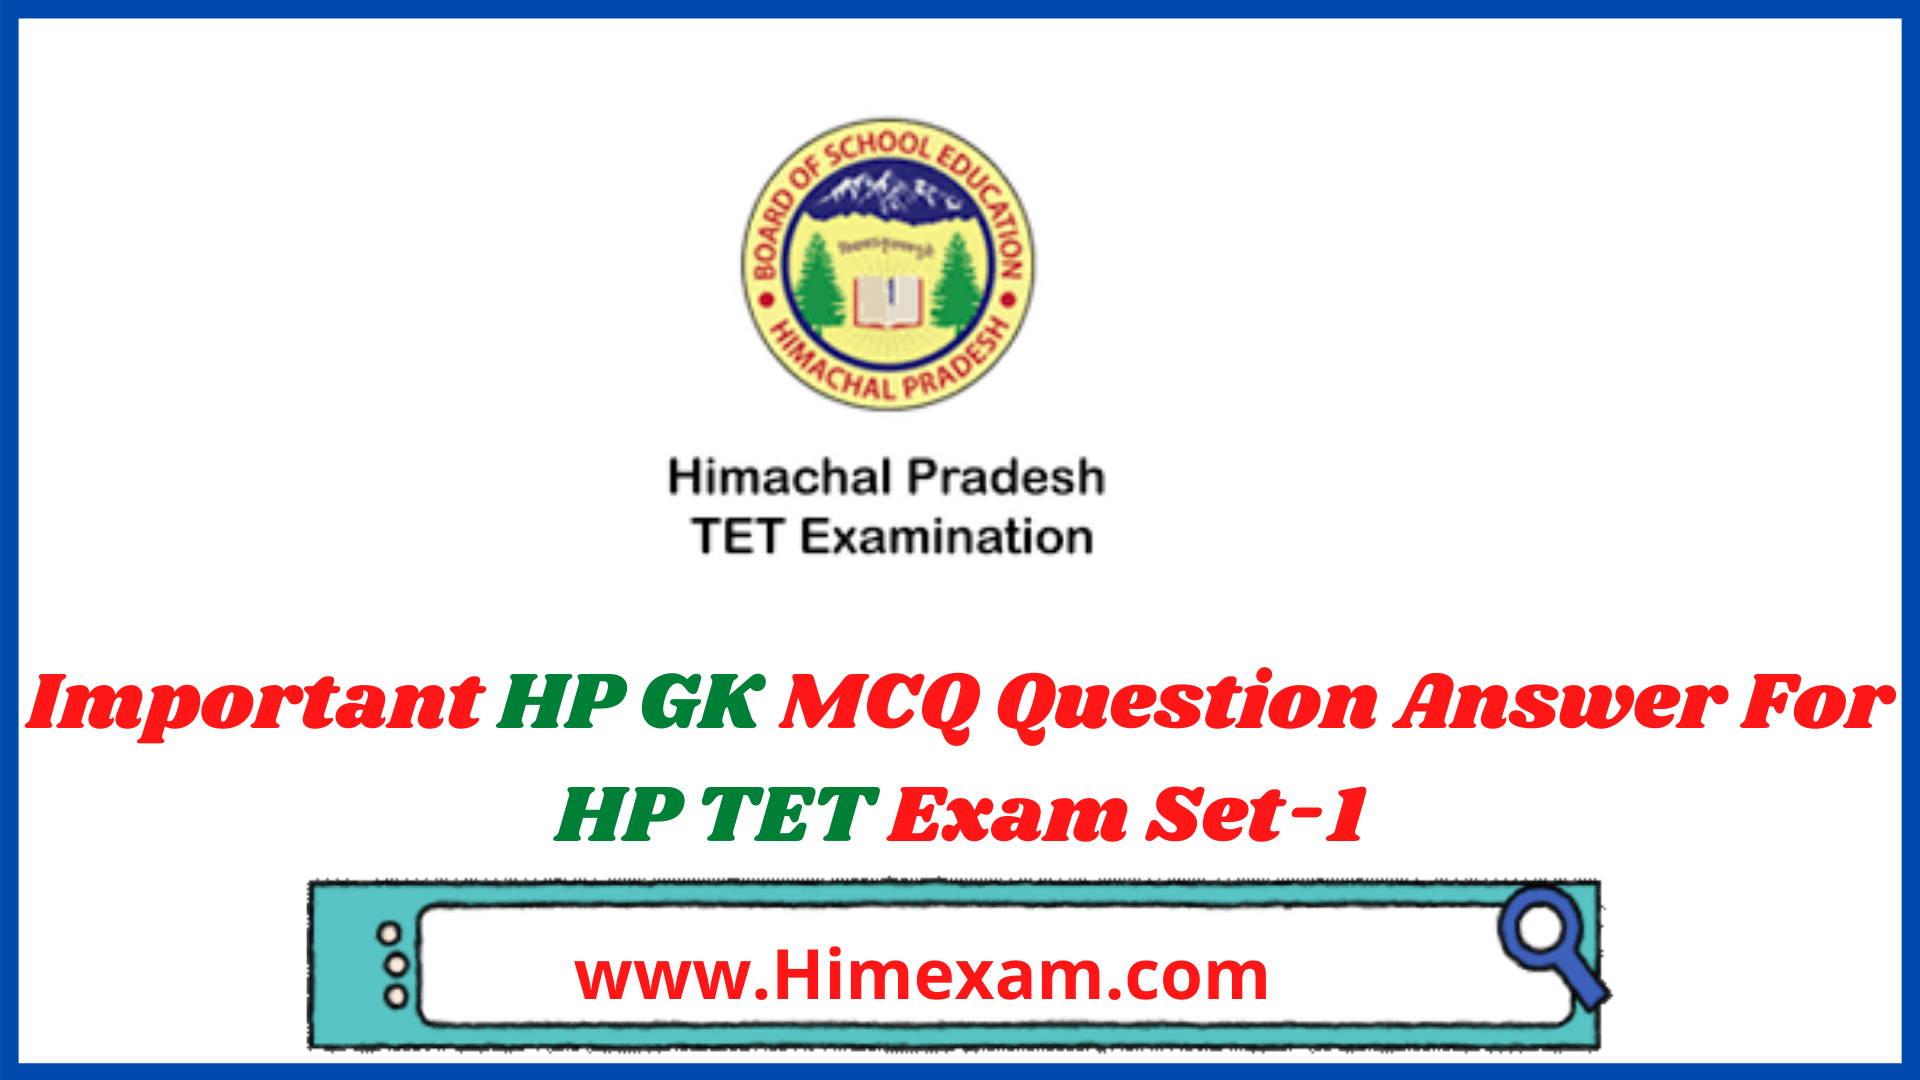 Important HP GK MCQ Question Answer For HP TET Exam Set-1